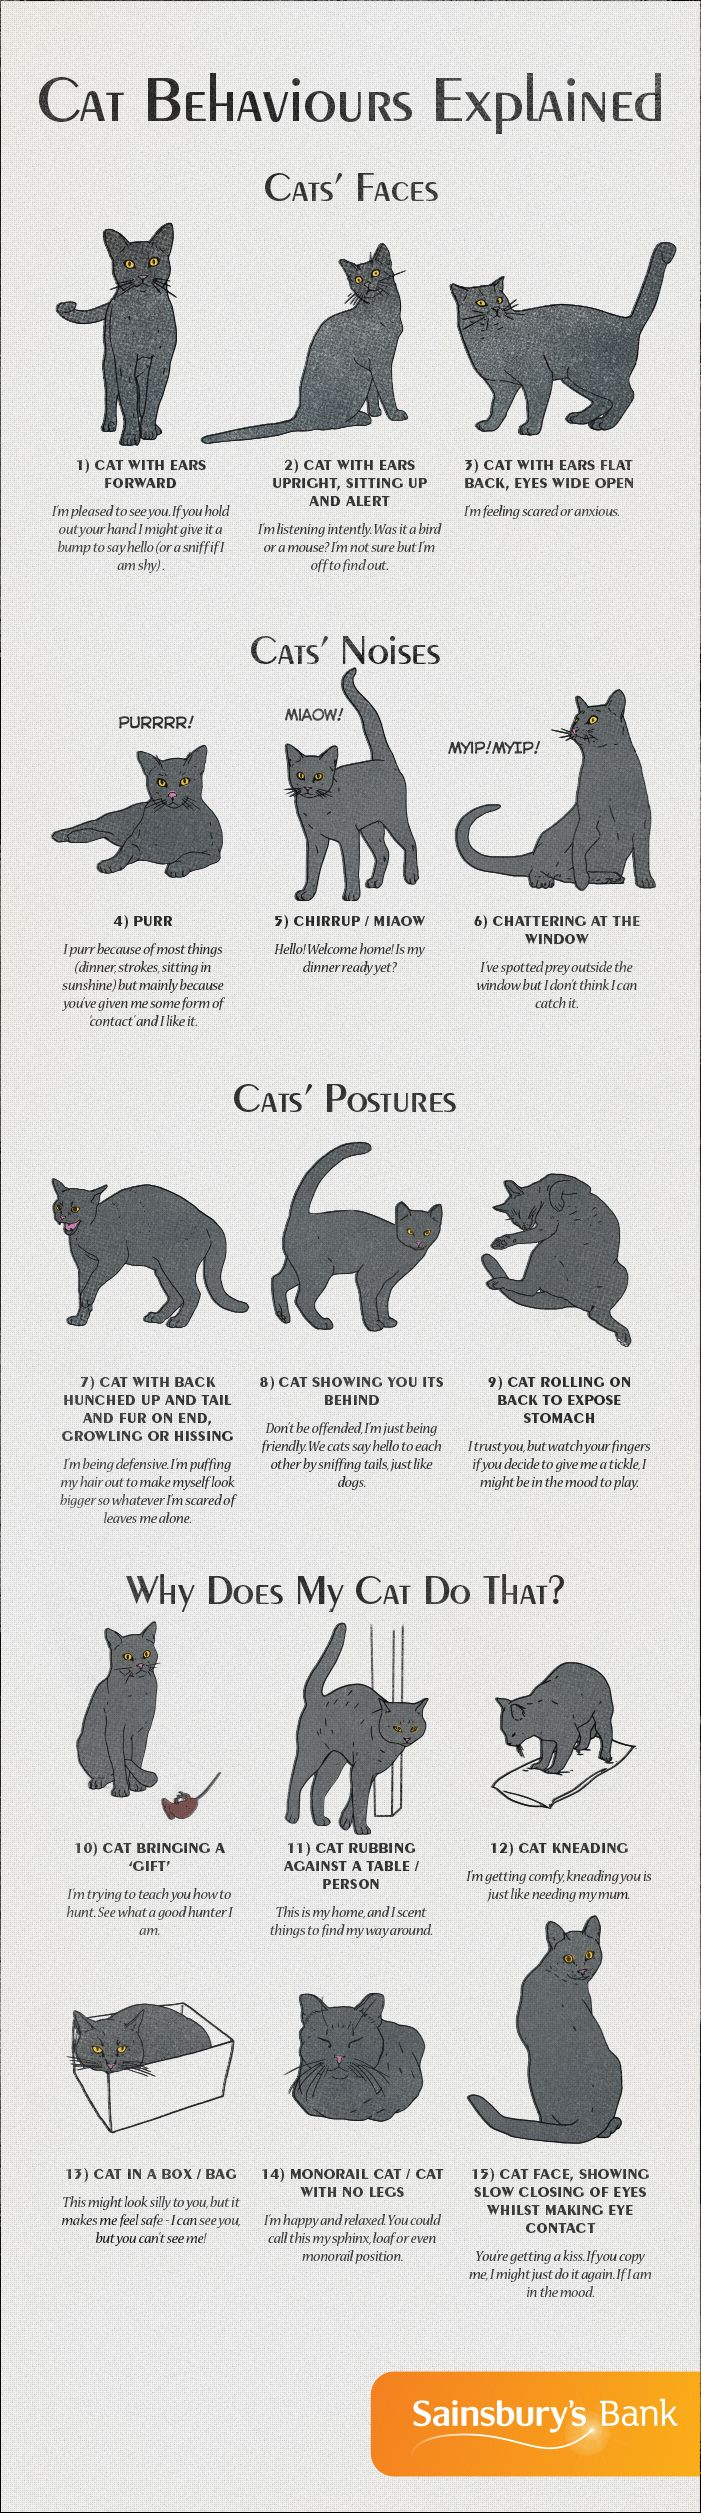 Cat Behaviours Explained | Visual.ly